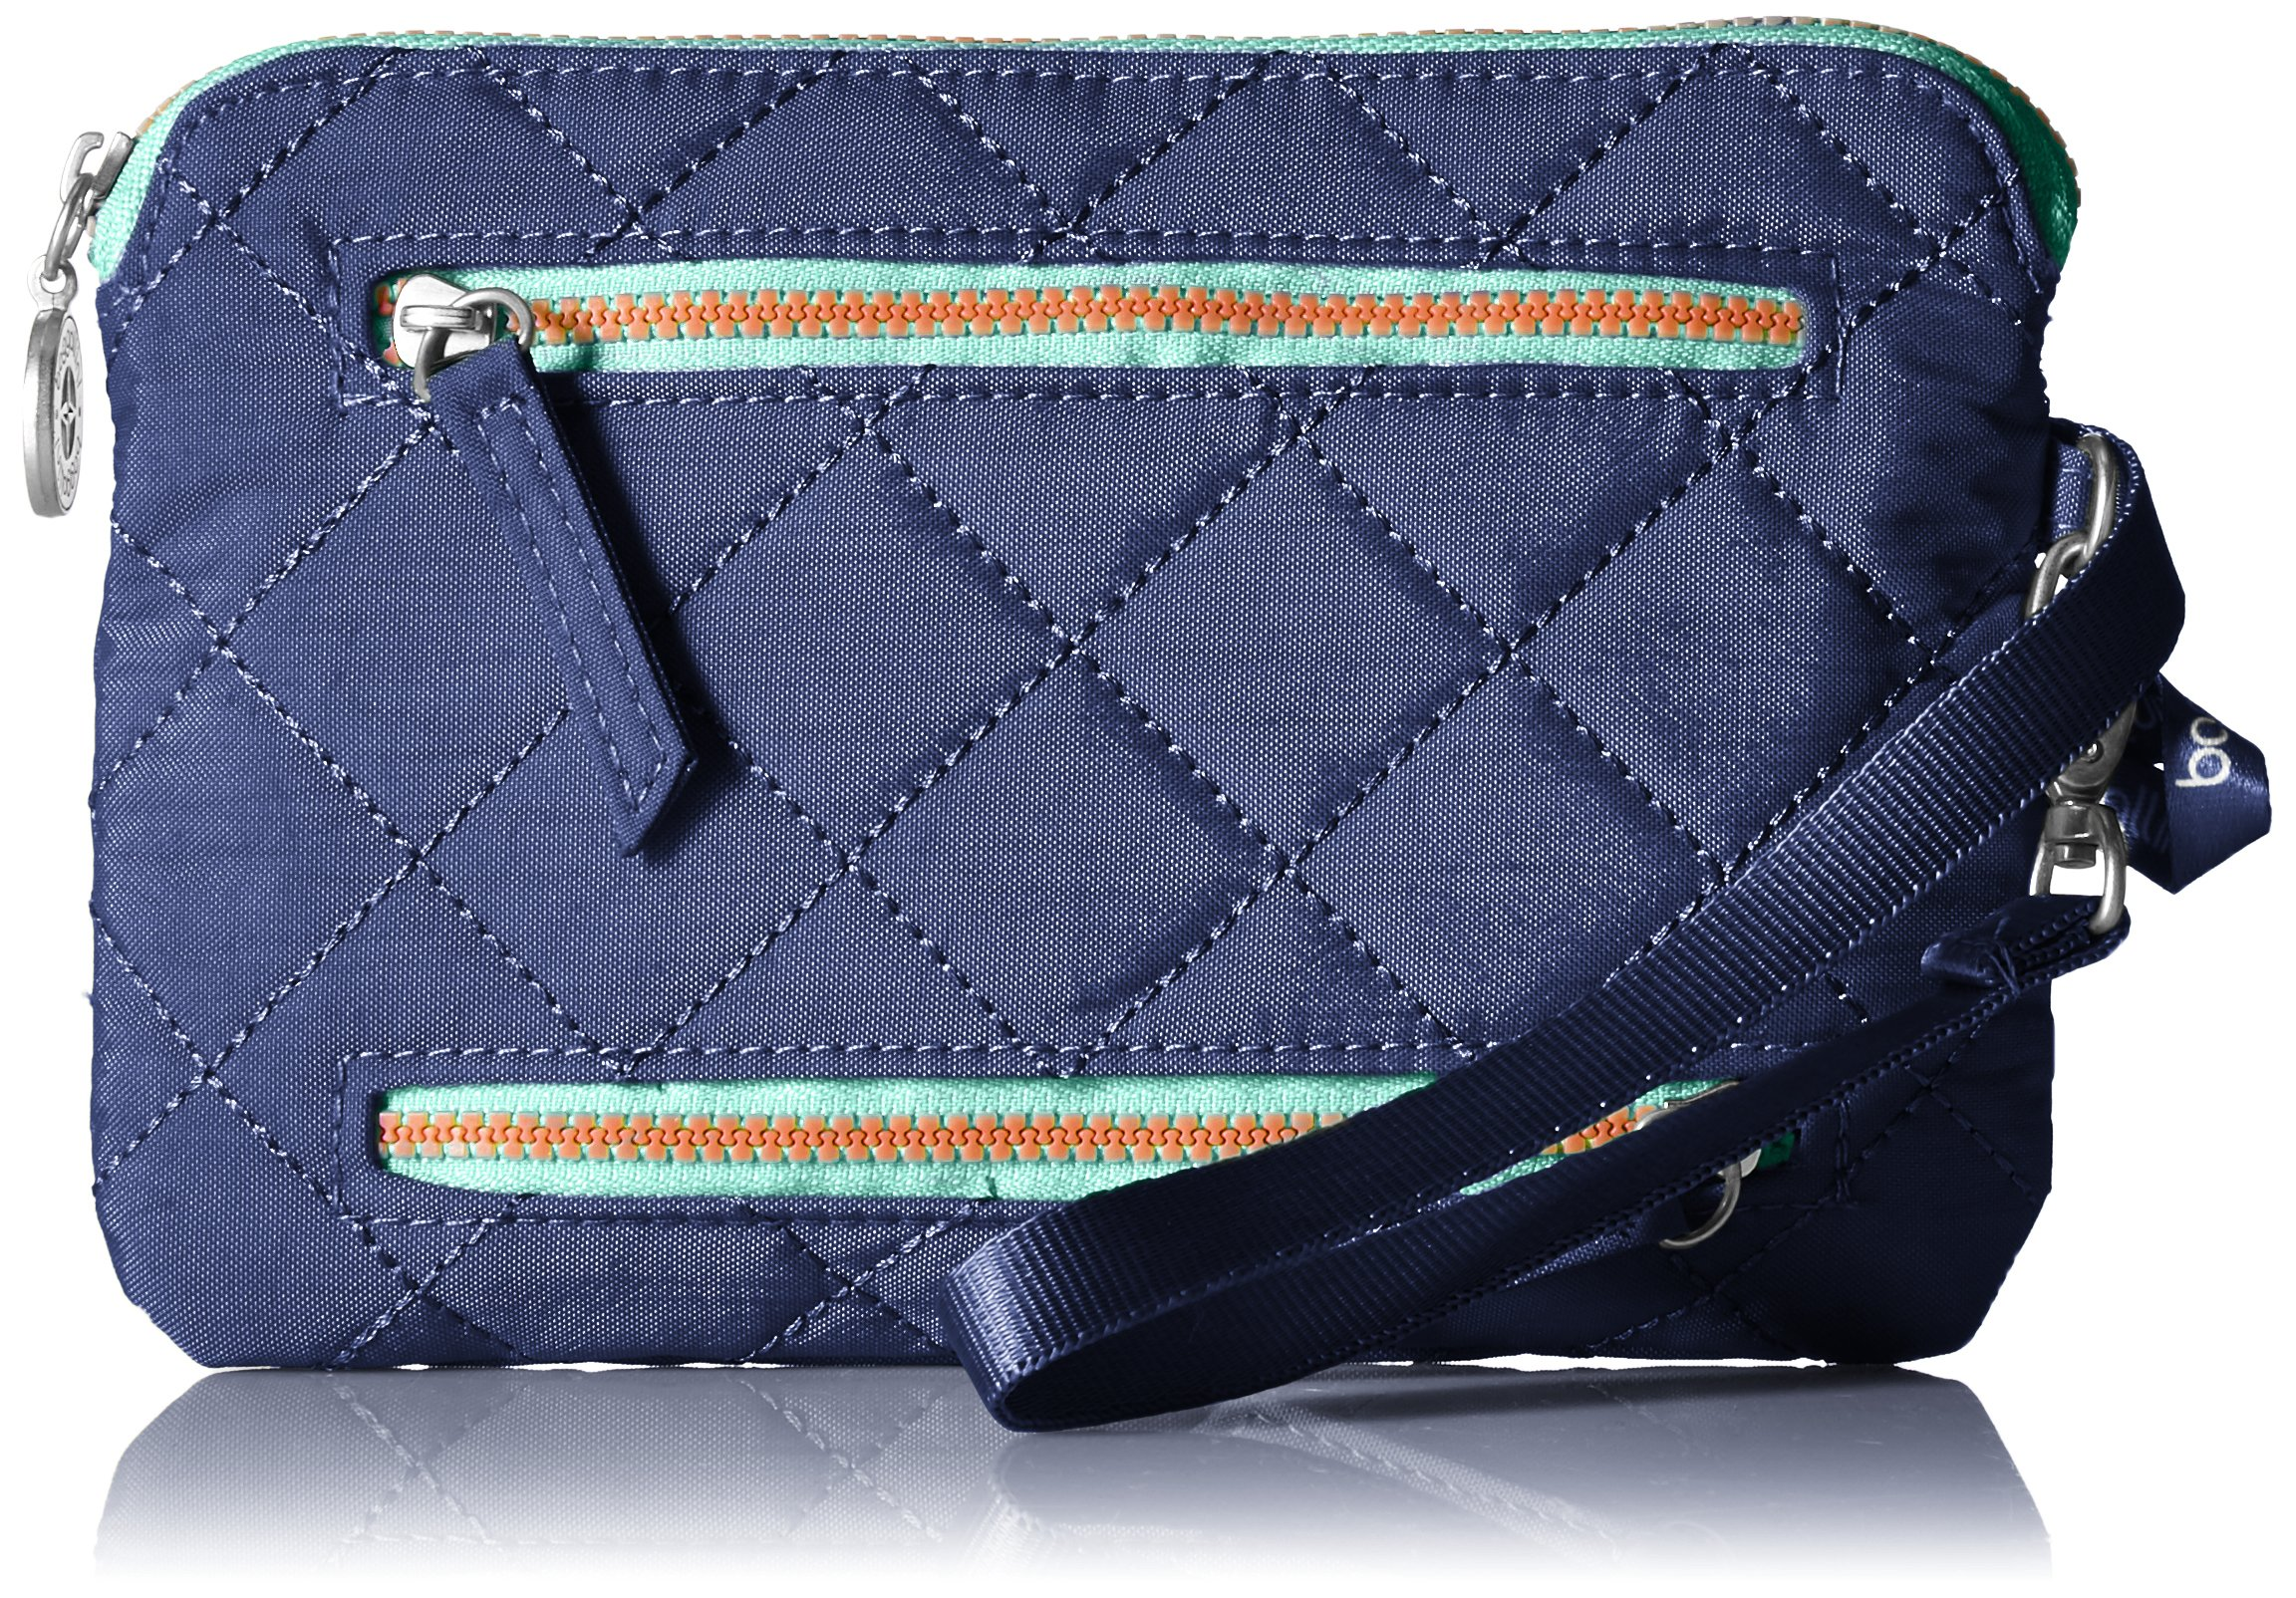 Baggallini Women's RFID Currency & Passport Organizer, royal blue/mint, One Size by BAGGALLINI